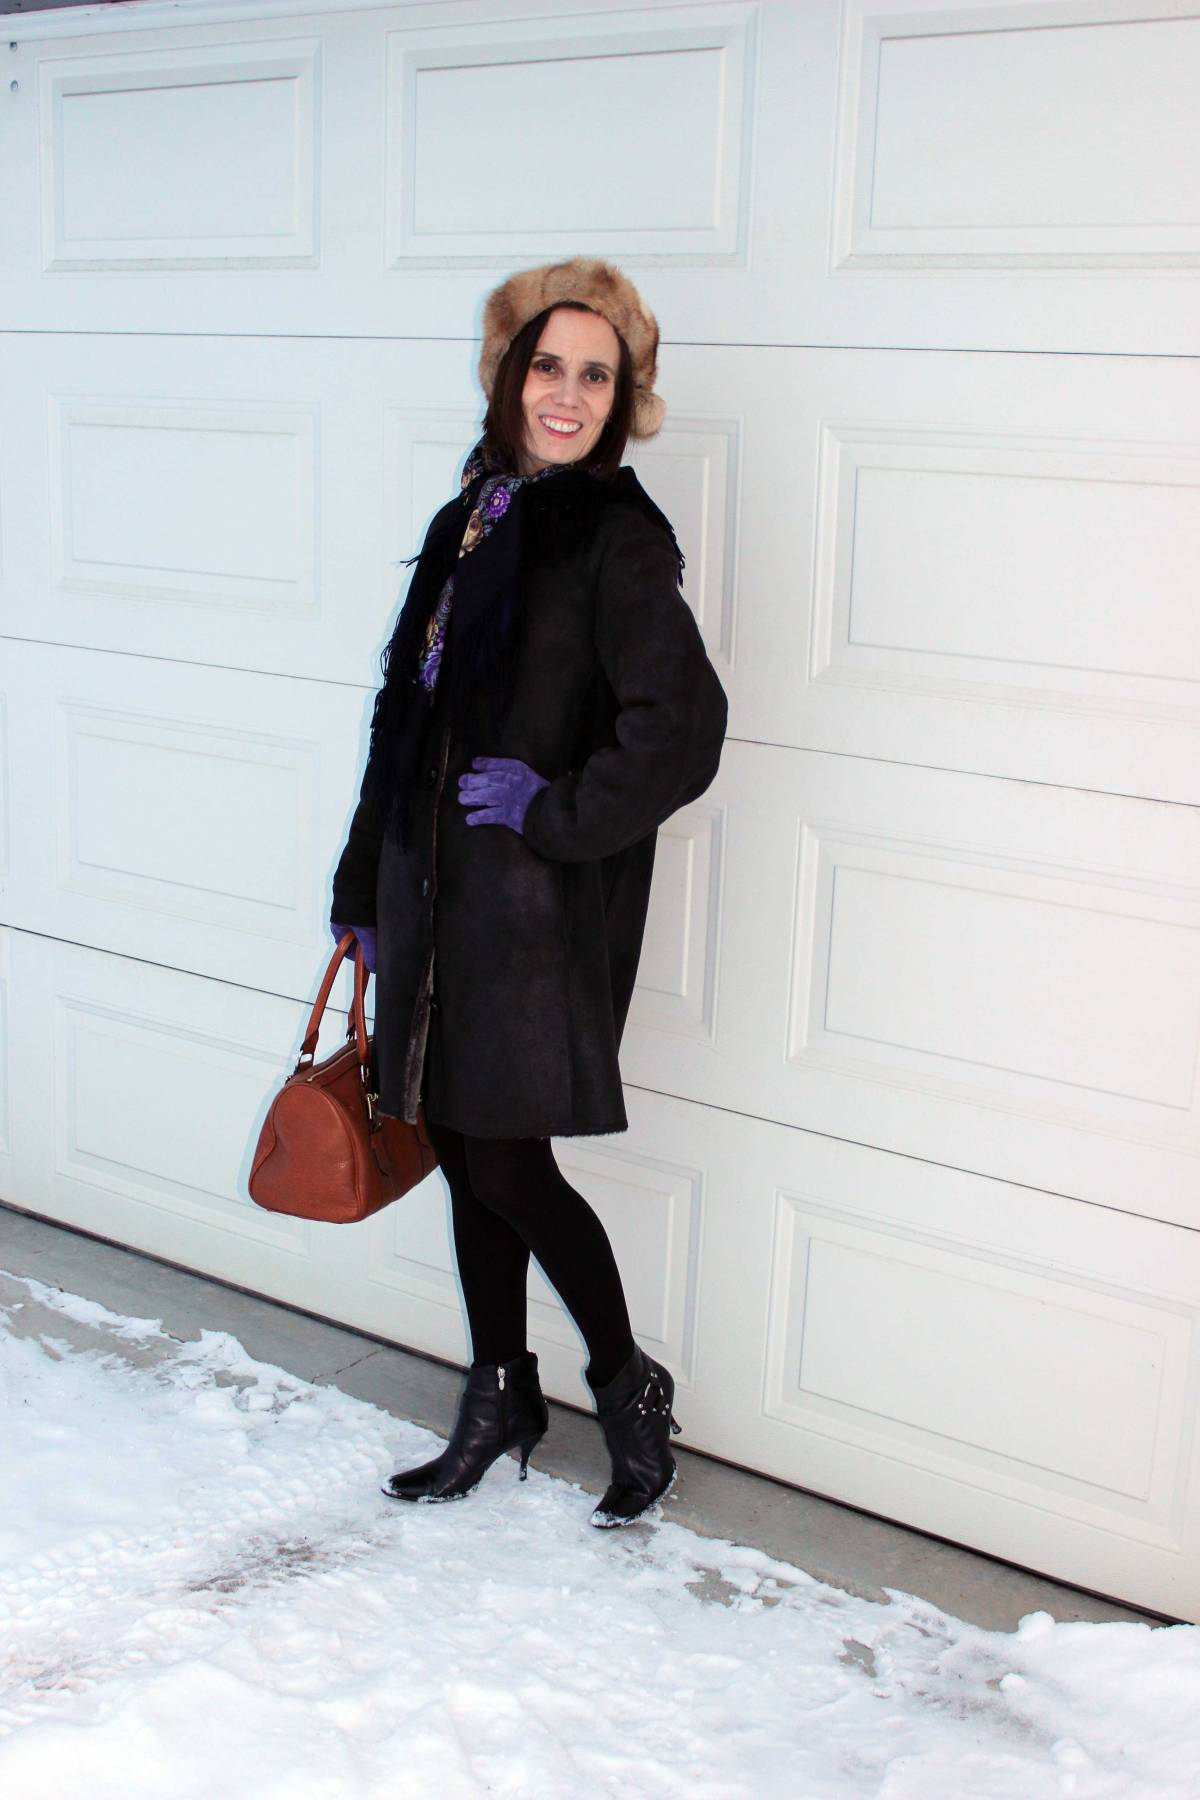 #fashionover50 woman in winter outerwear